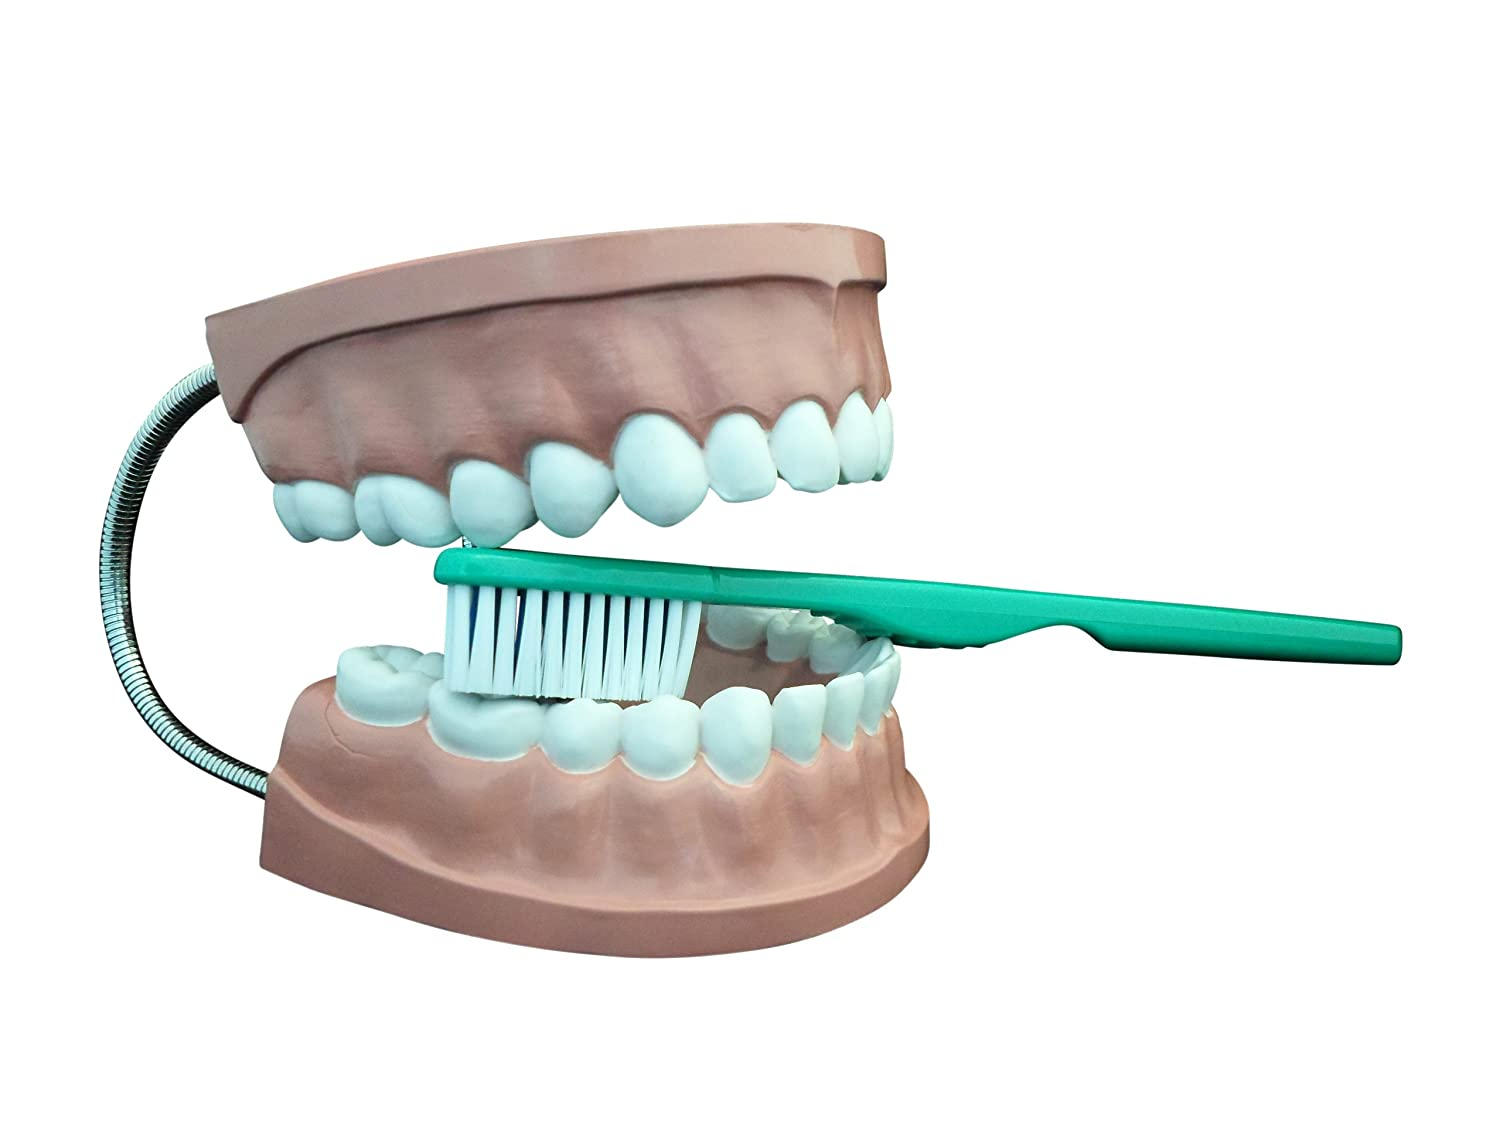 Ajax Scientific AN020-0002 Plastic Dental Care Model with Giant Toothbrush, 6 x 4.5 x 5 Inches